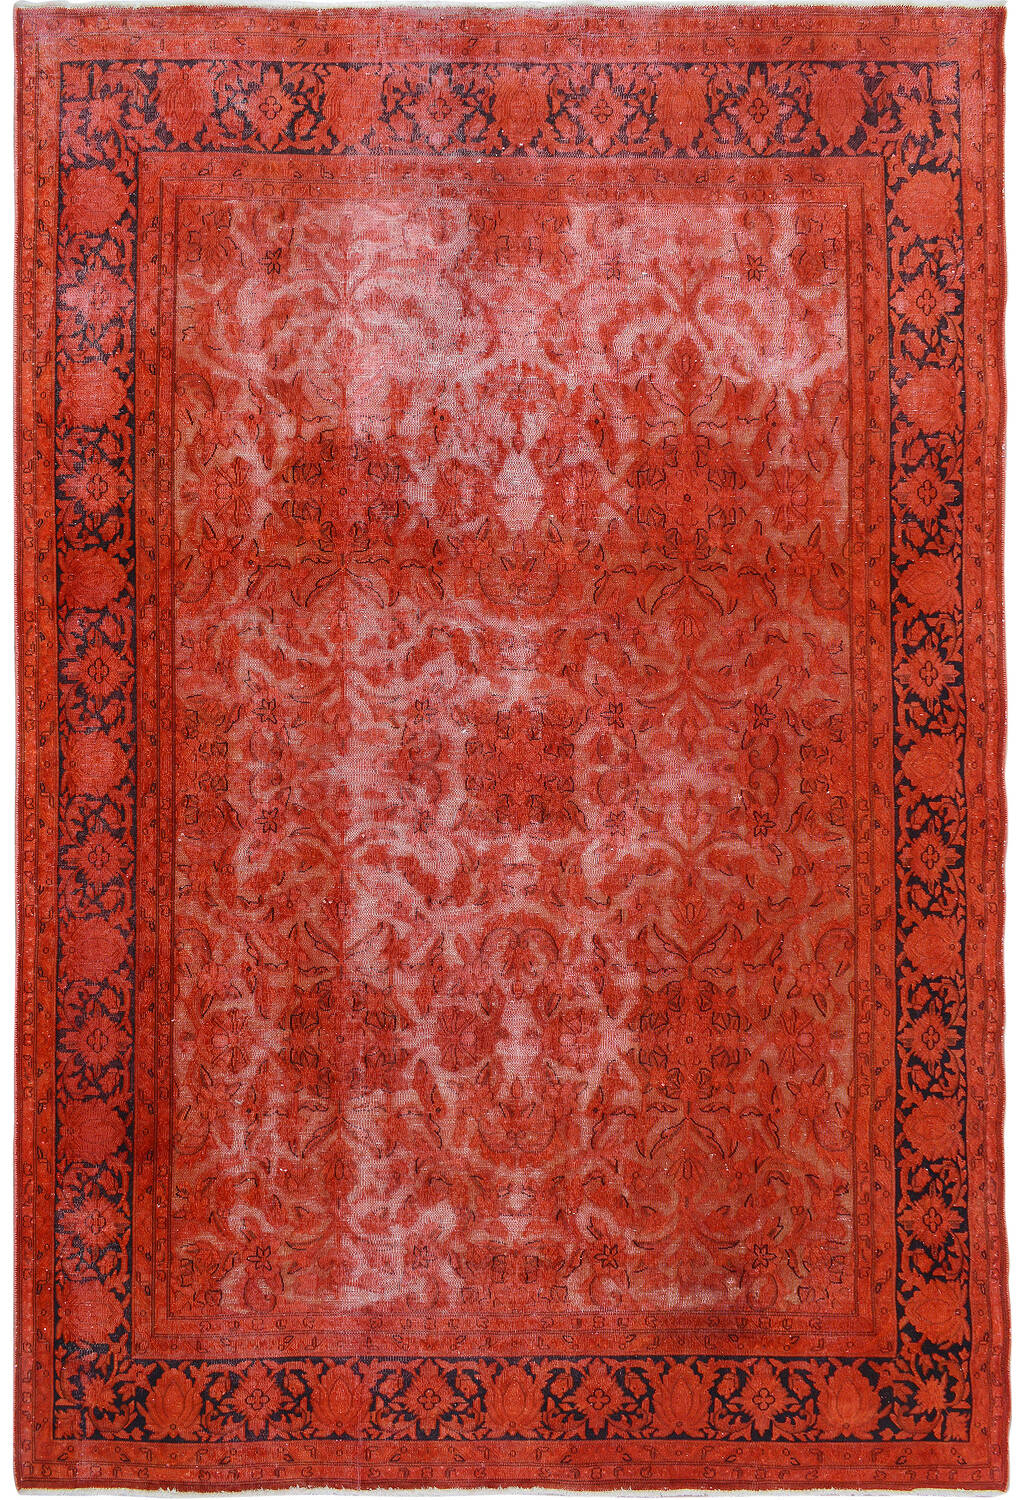 Antique Over Dyed Floral Kerman Persian Area Rug 7x9 image 1